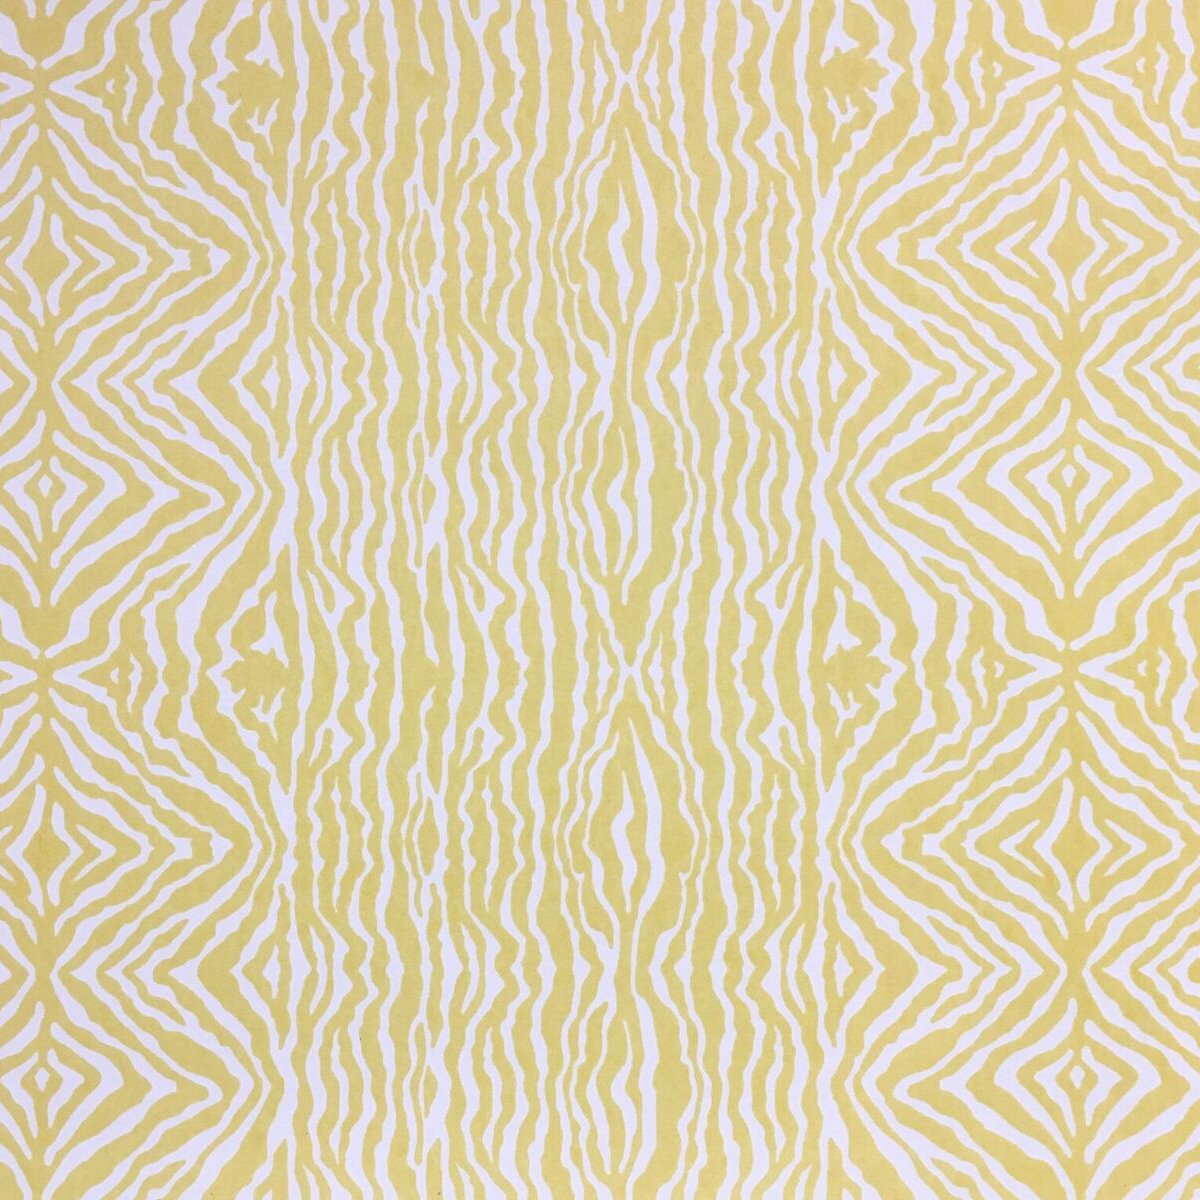 Grevys zebra stripe wallpaper primrose yellow